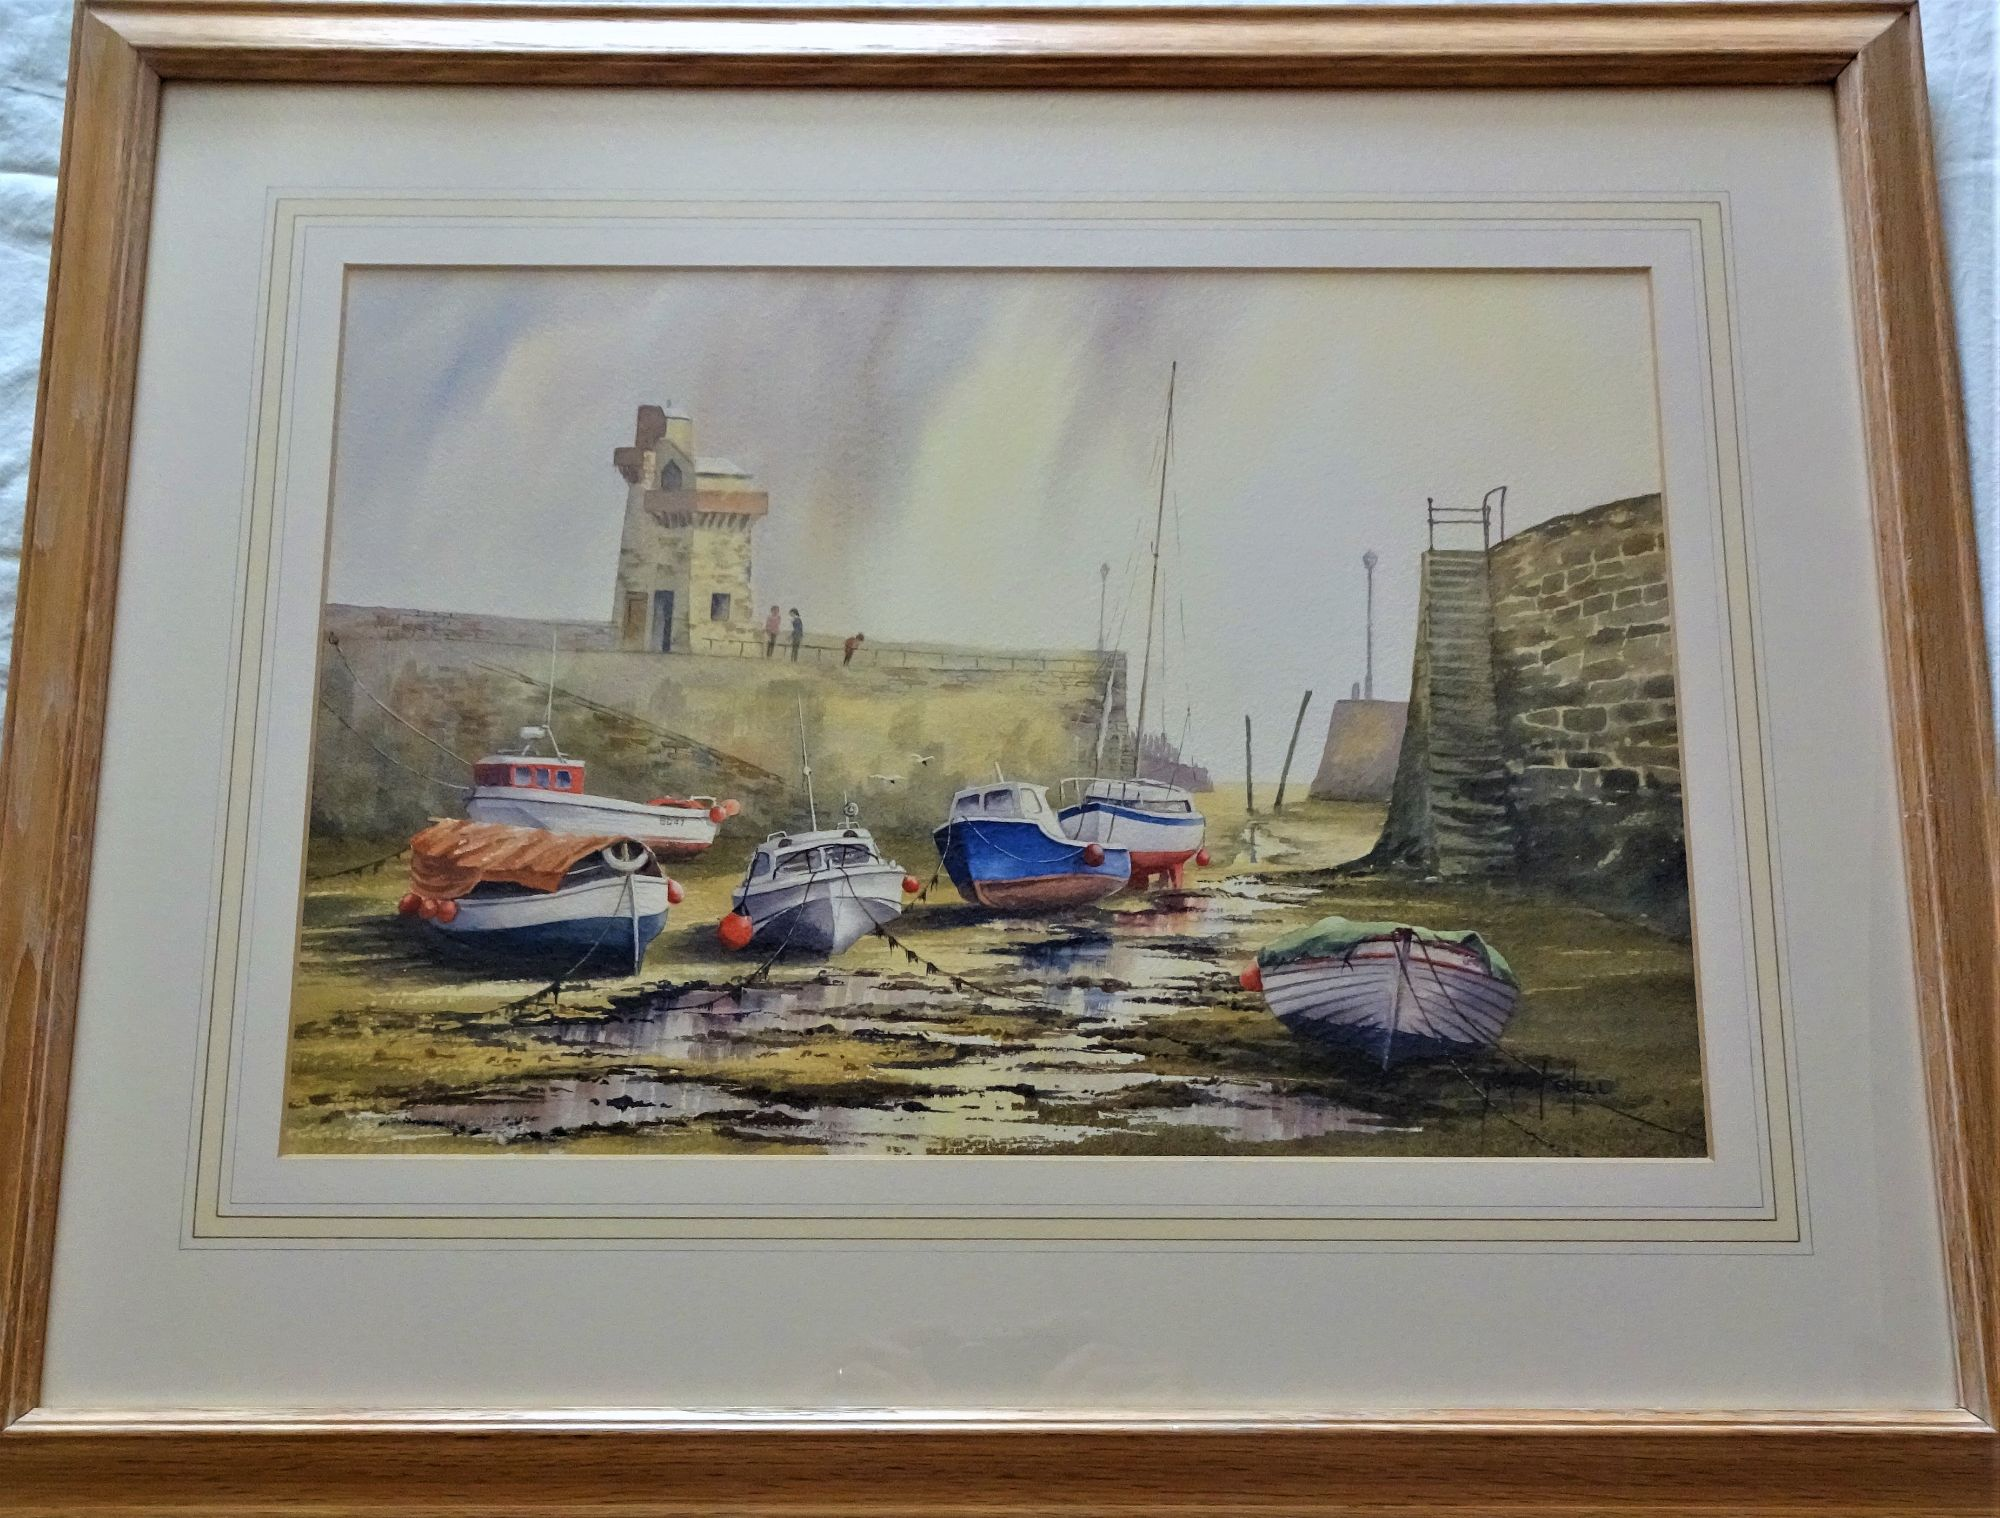 Gordon Chell, 20thC Sheffield artist, Low Tide Lynmouth. North Devon, watercolour, c1990.